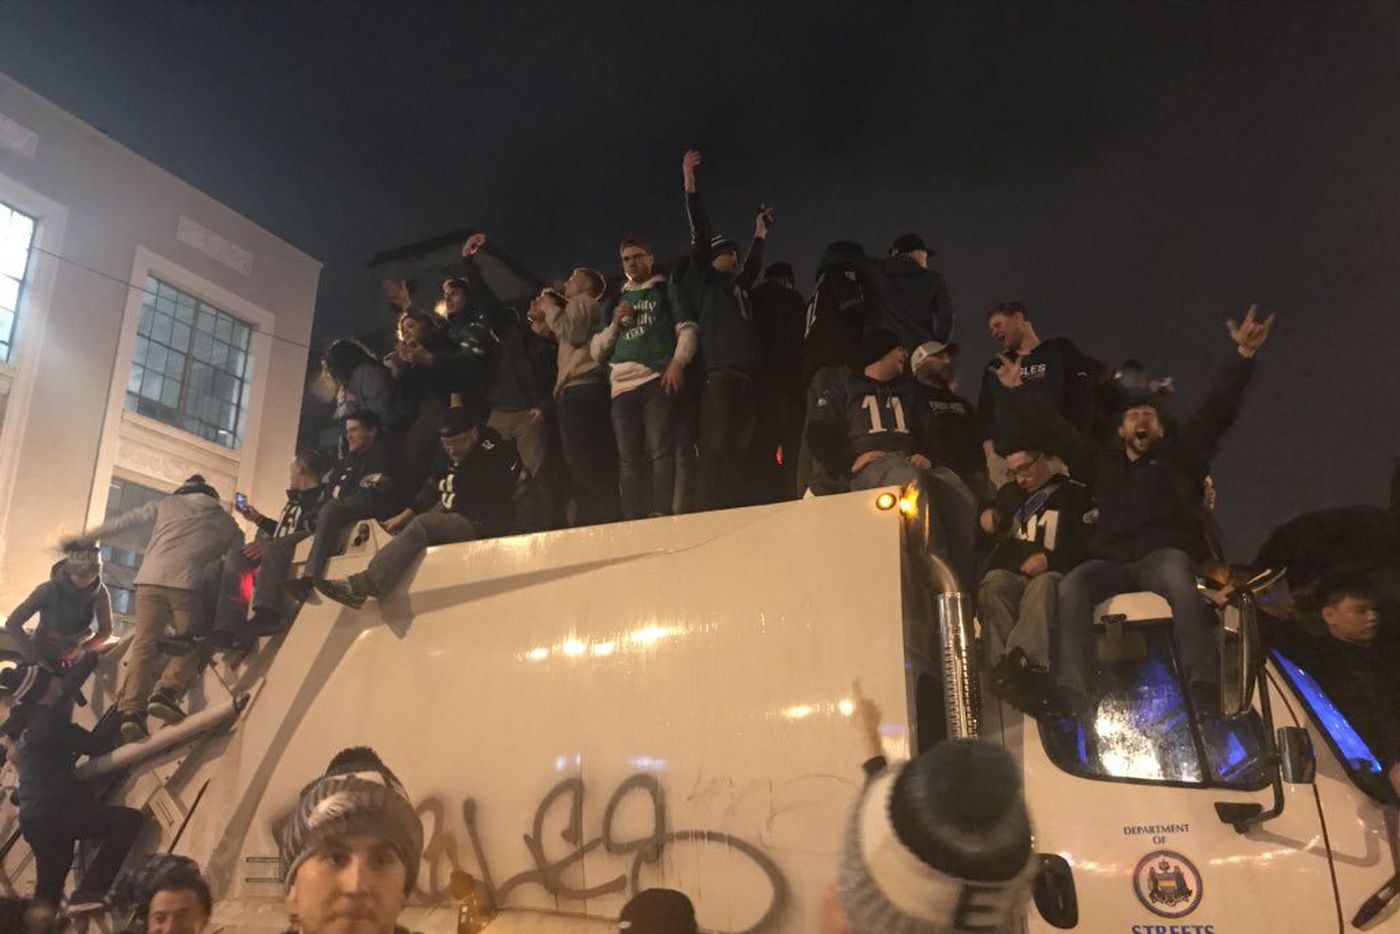 'Horrific scenes' and 'rioting': How national, worldwide media portrayed Eagles fans' post-Super Bowl celebrations